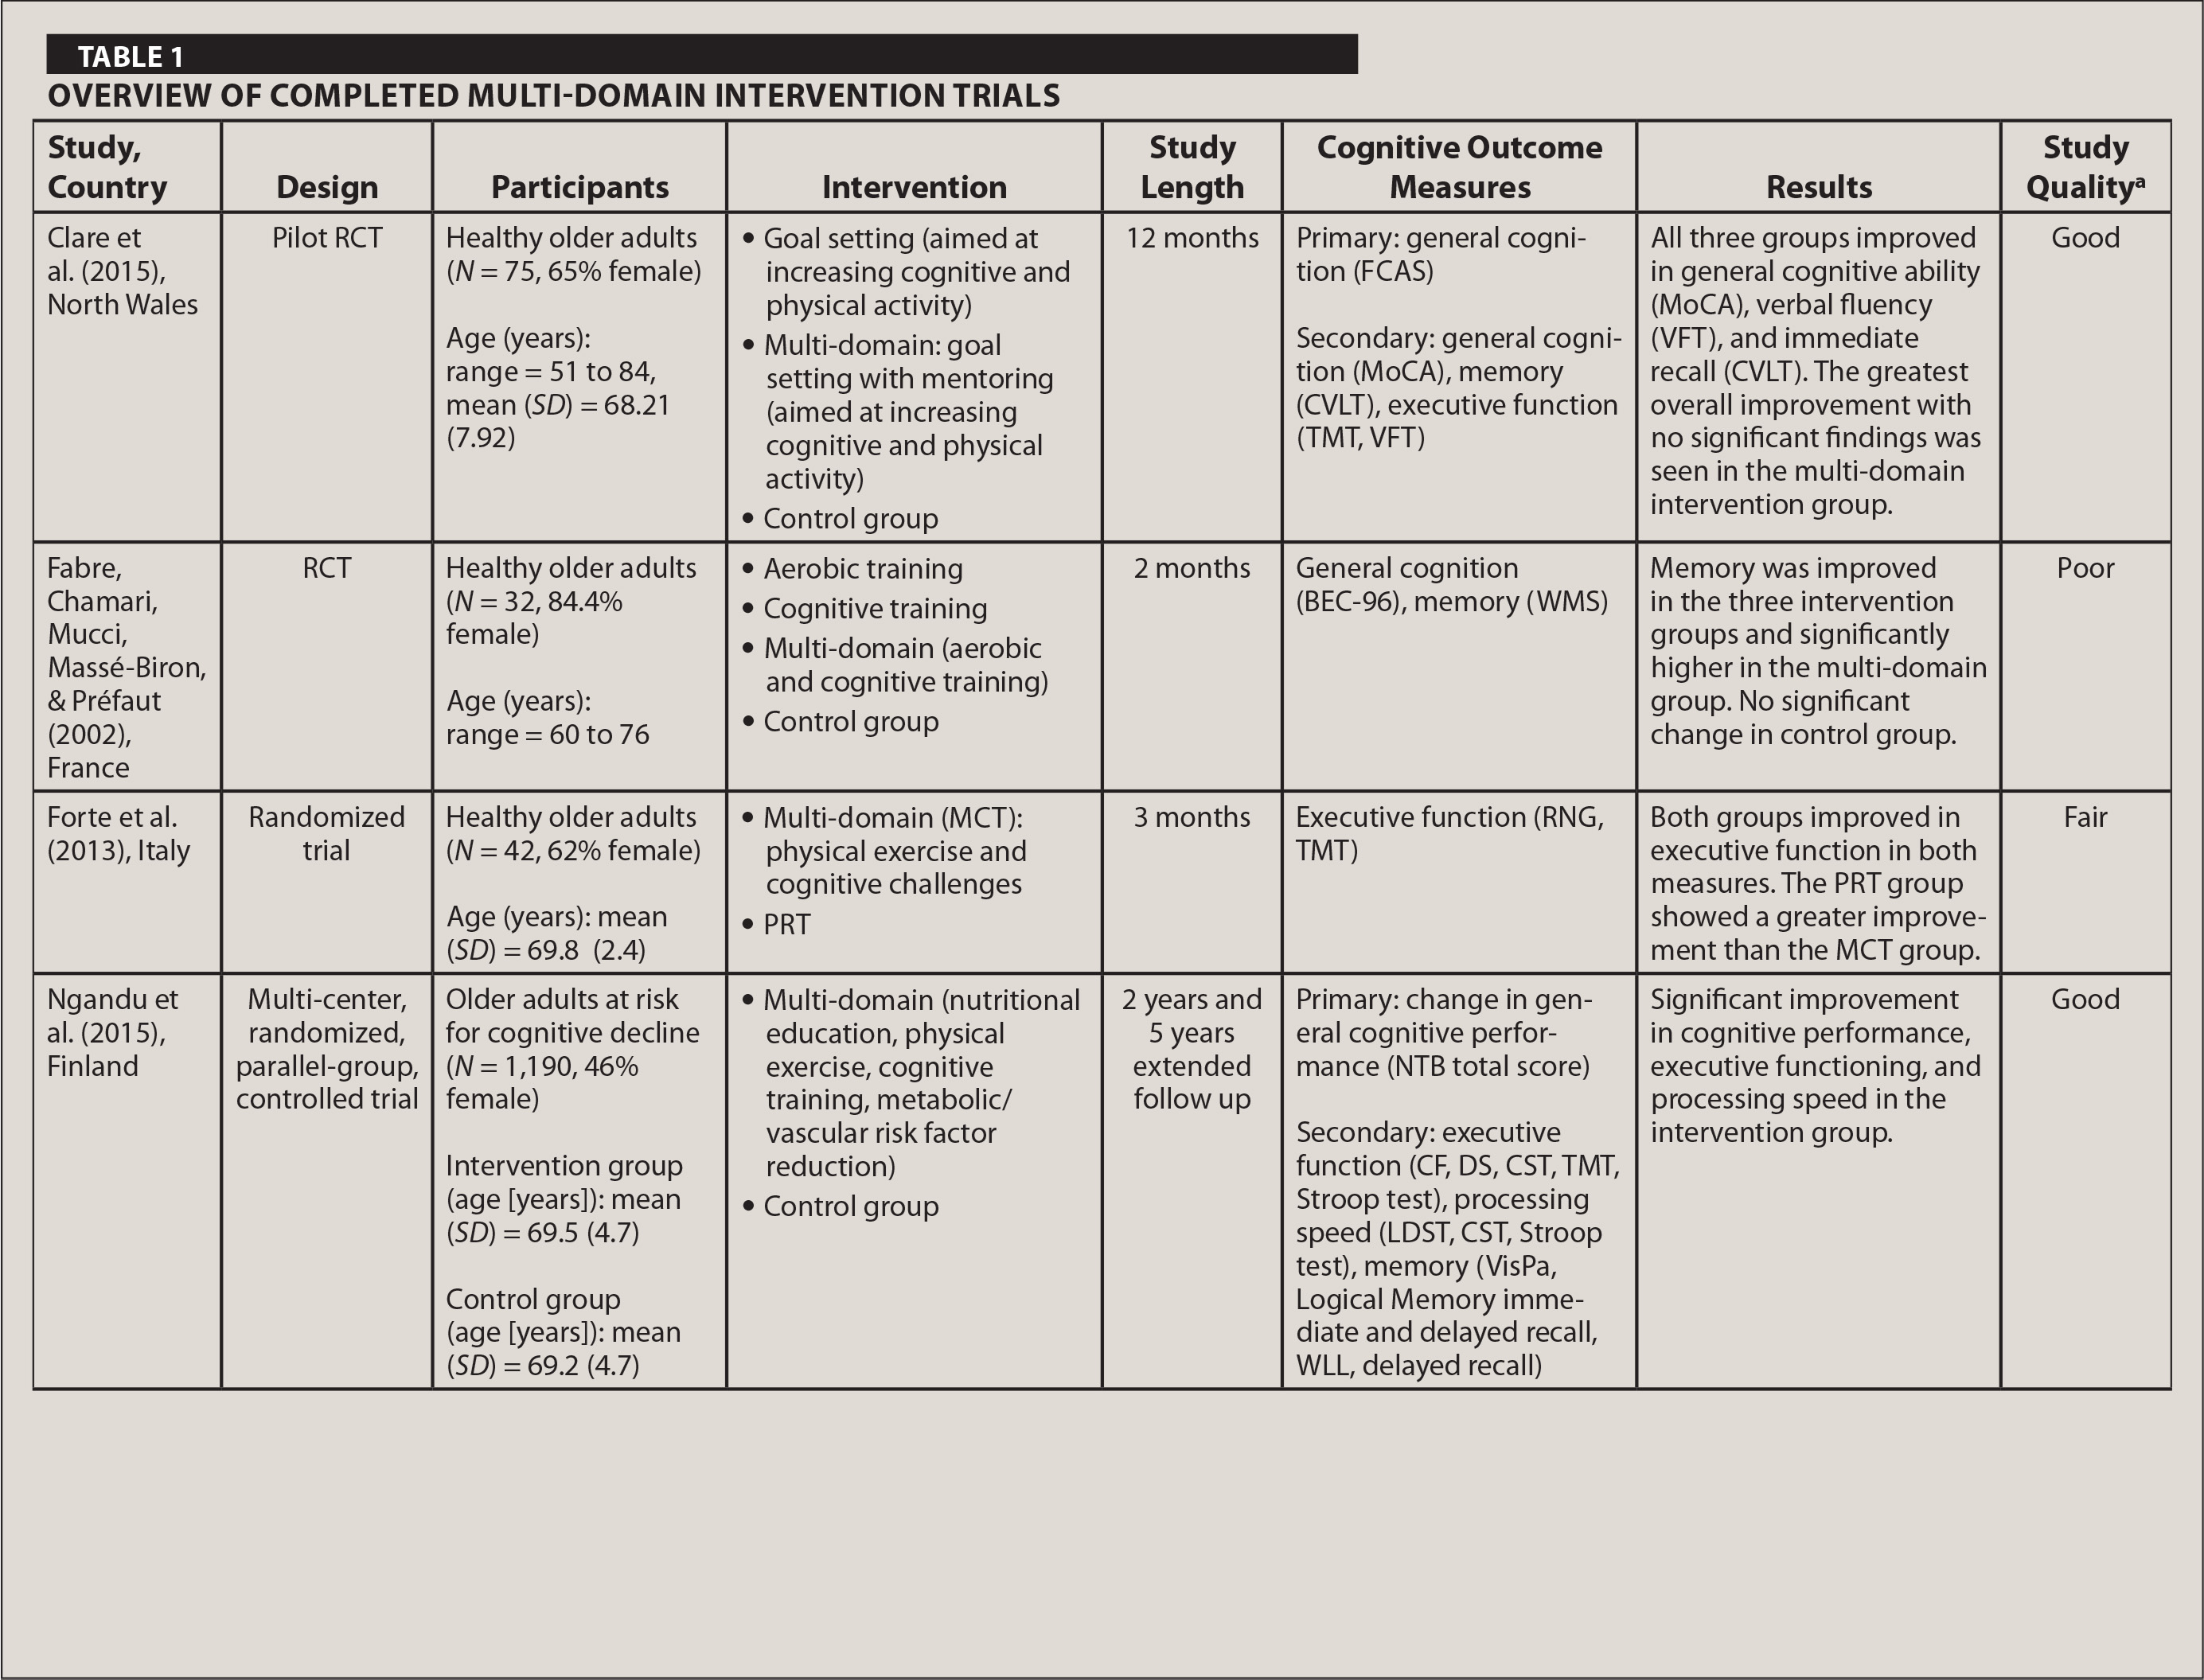 Overview of Completed Multi-Domain Intervention Trials